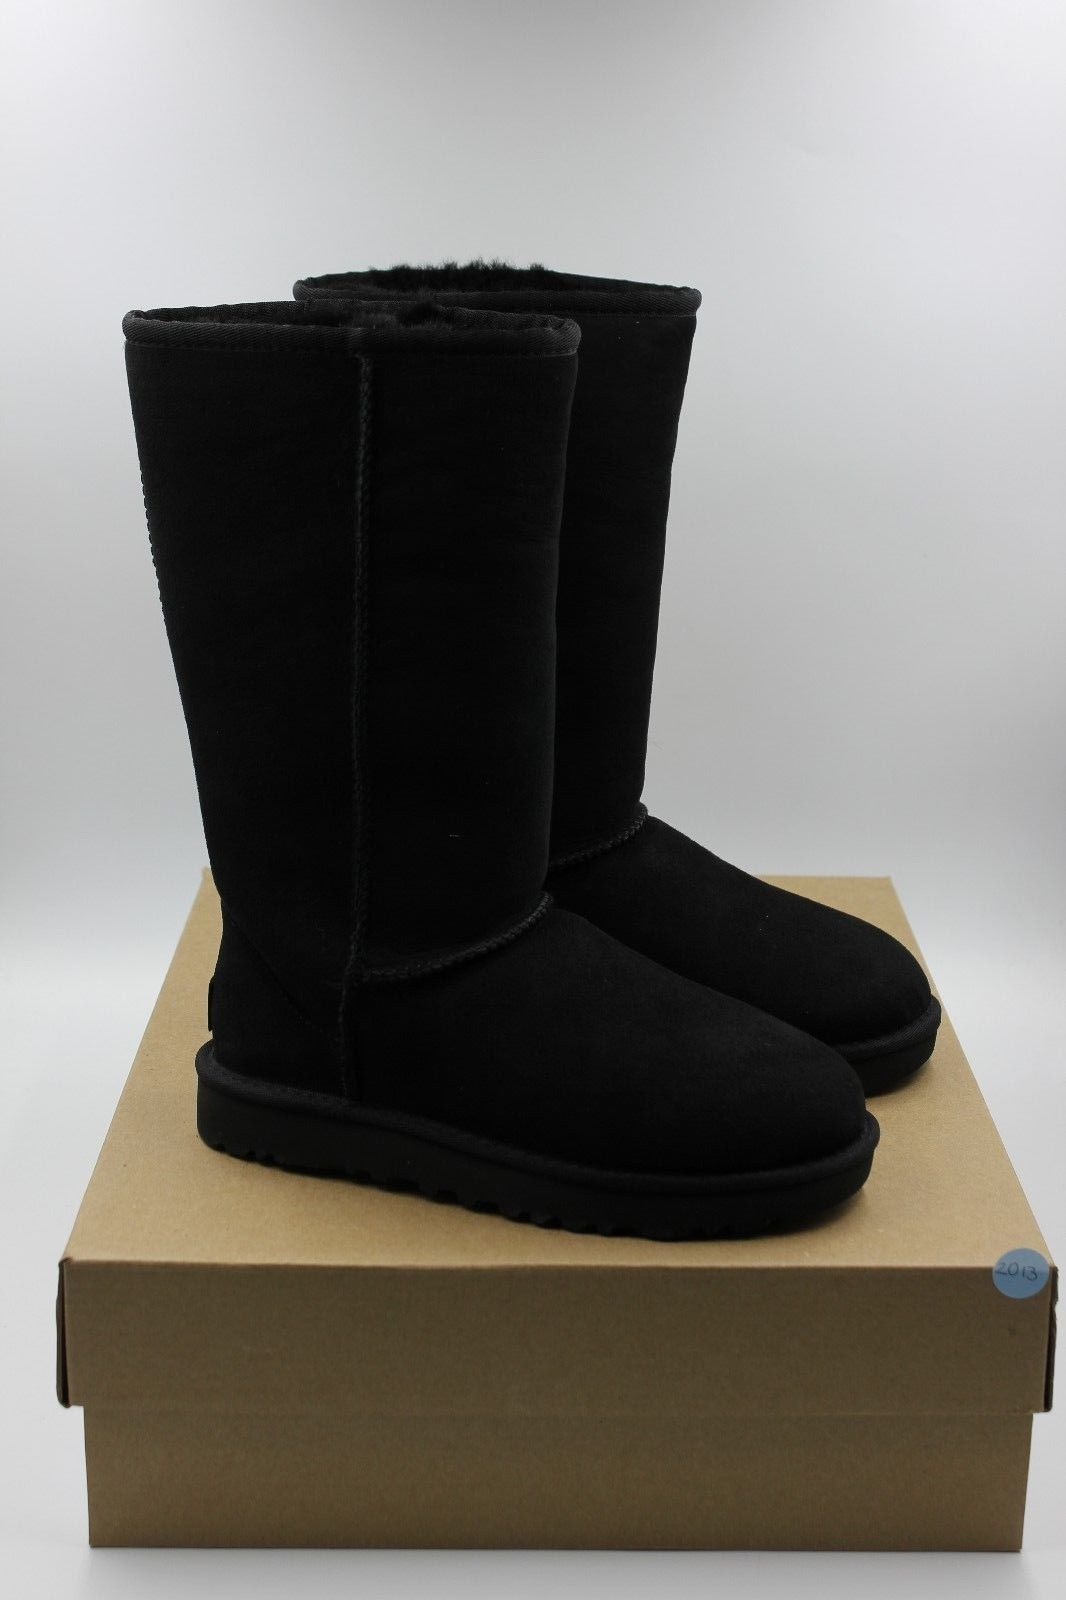 ca1b7c16fc7 139.99 | New UGG Authentic Classic Tall II Women's Winter Boots in ...